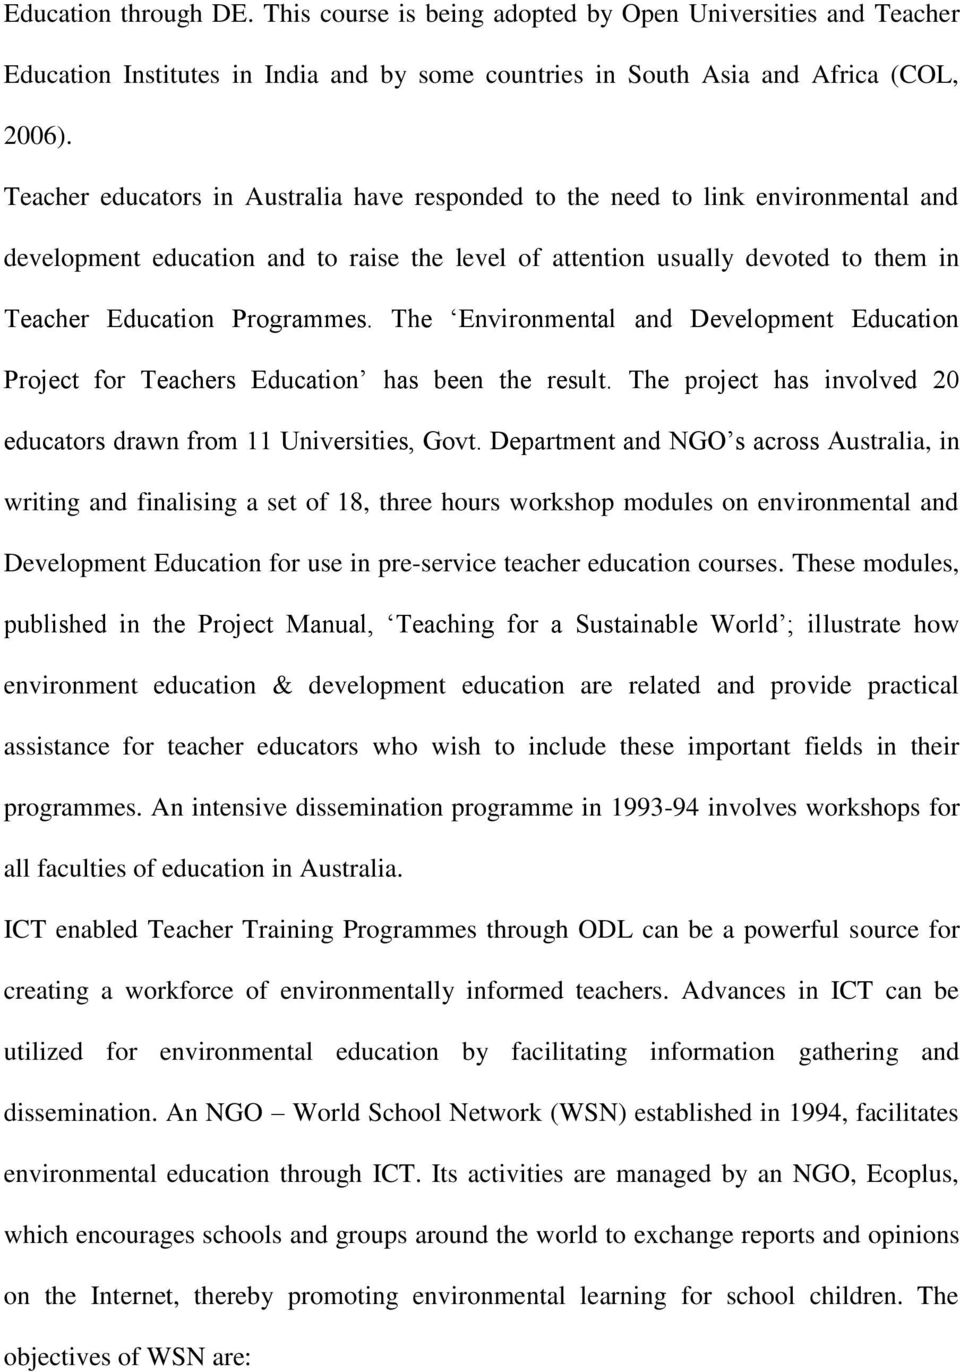 The Environmental and Development Education Project for Teachers Education has been the result. The project has involved 20 educators drawn from 11 Universities, Govt.